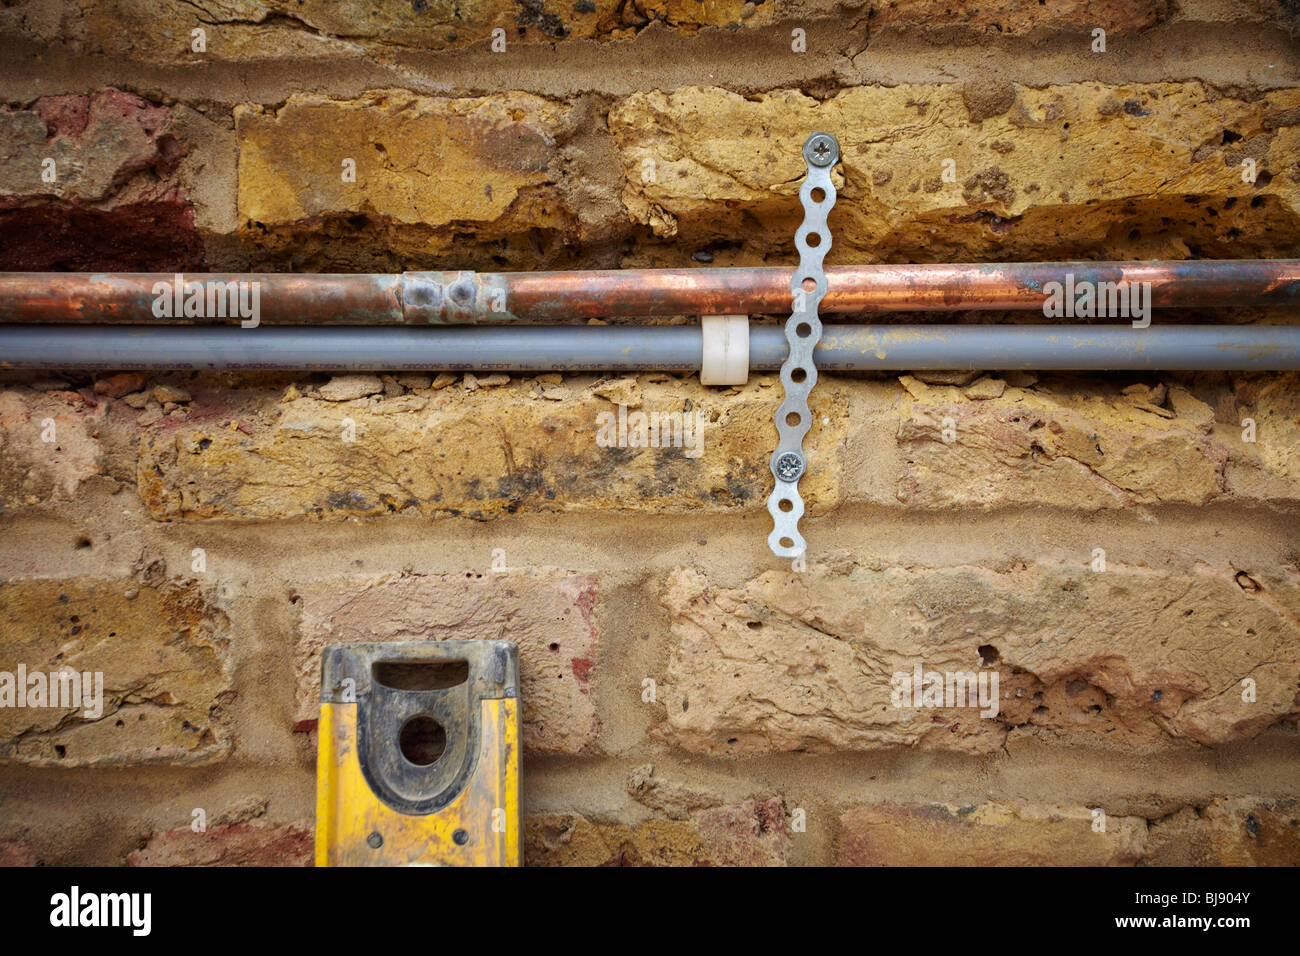 Plumbing pipes in wall chasing - Stock Image